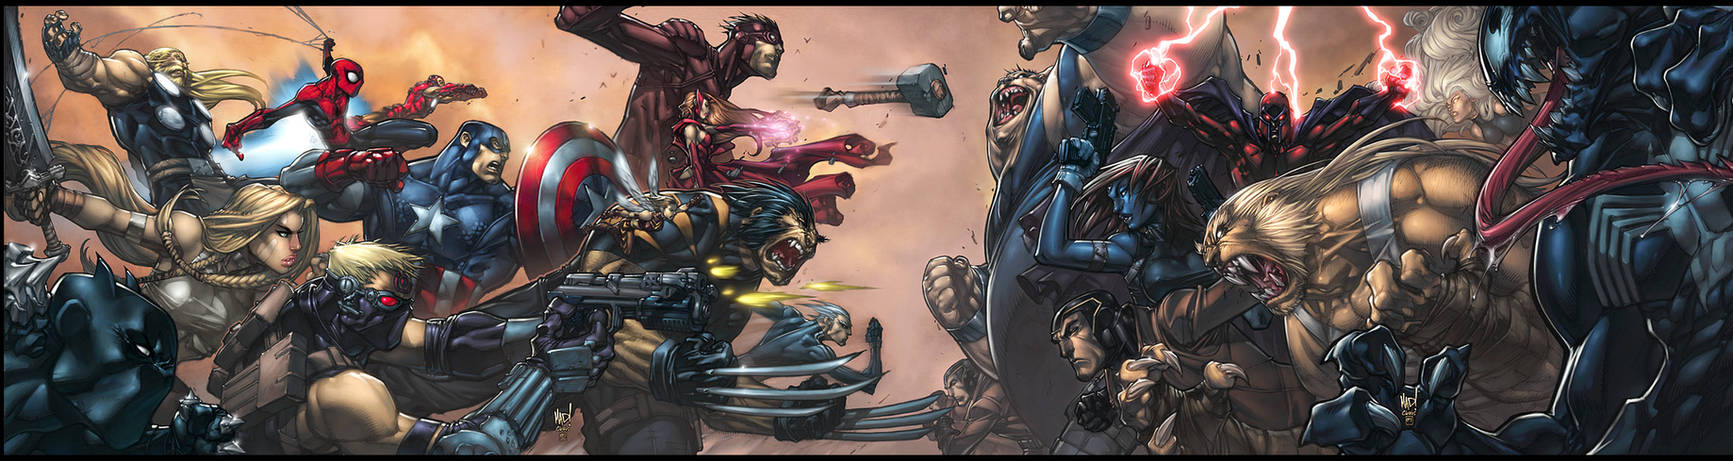 Ultimates Gatefold Cover